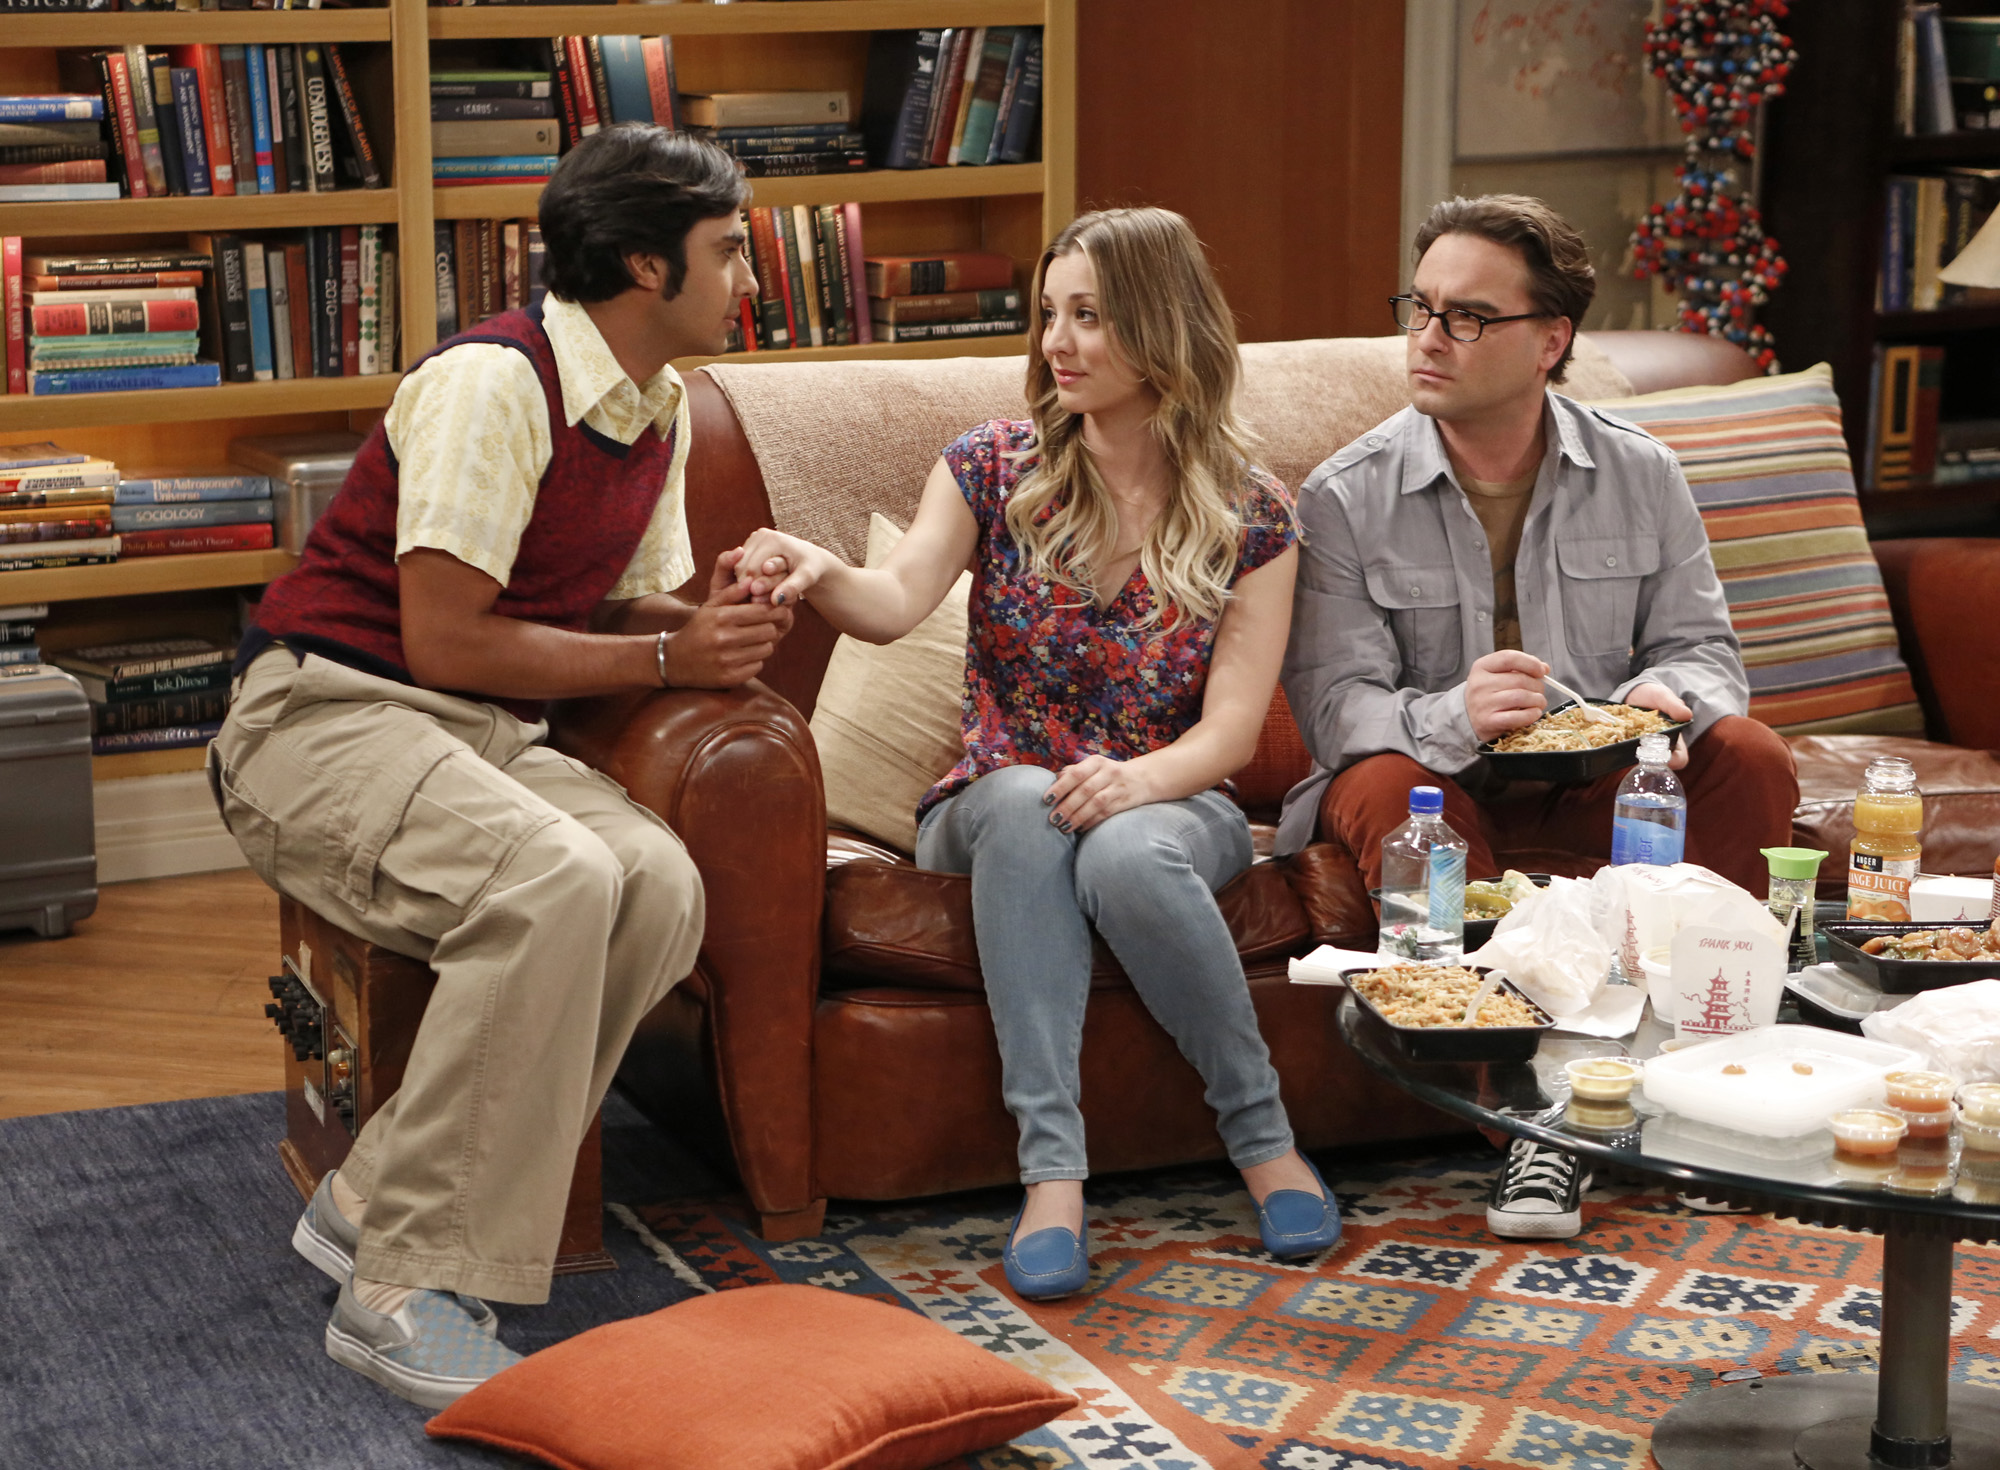 Since launching on the Chinese video-hosting website Sohu TV in 2009, The Big Bang Theory has racked up 1.3 billion views — equivalent to one view for every person in the country